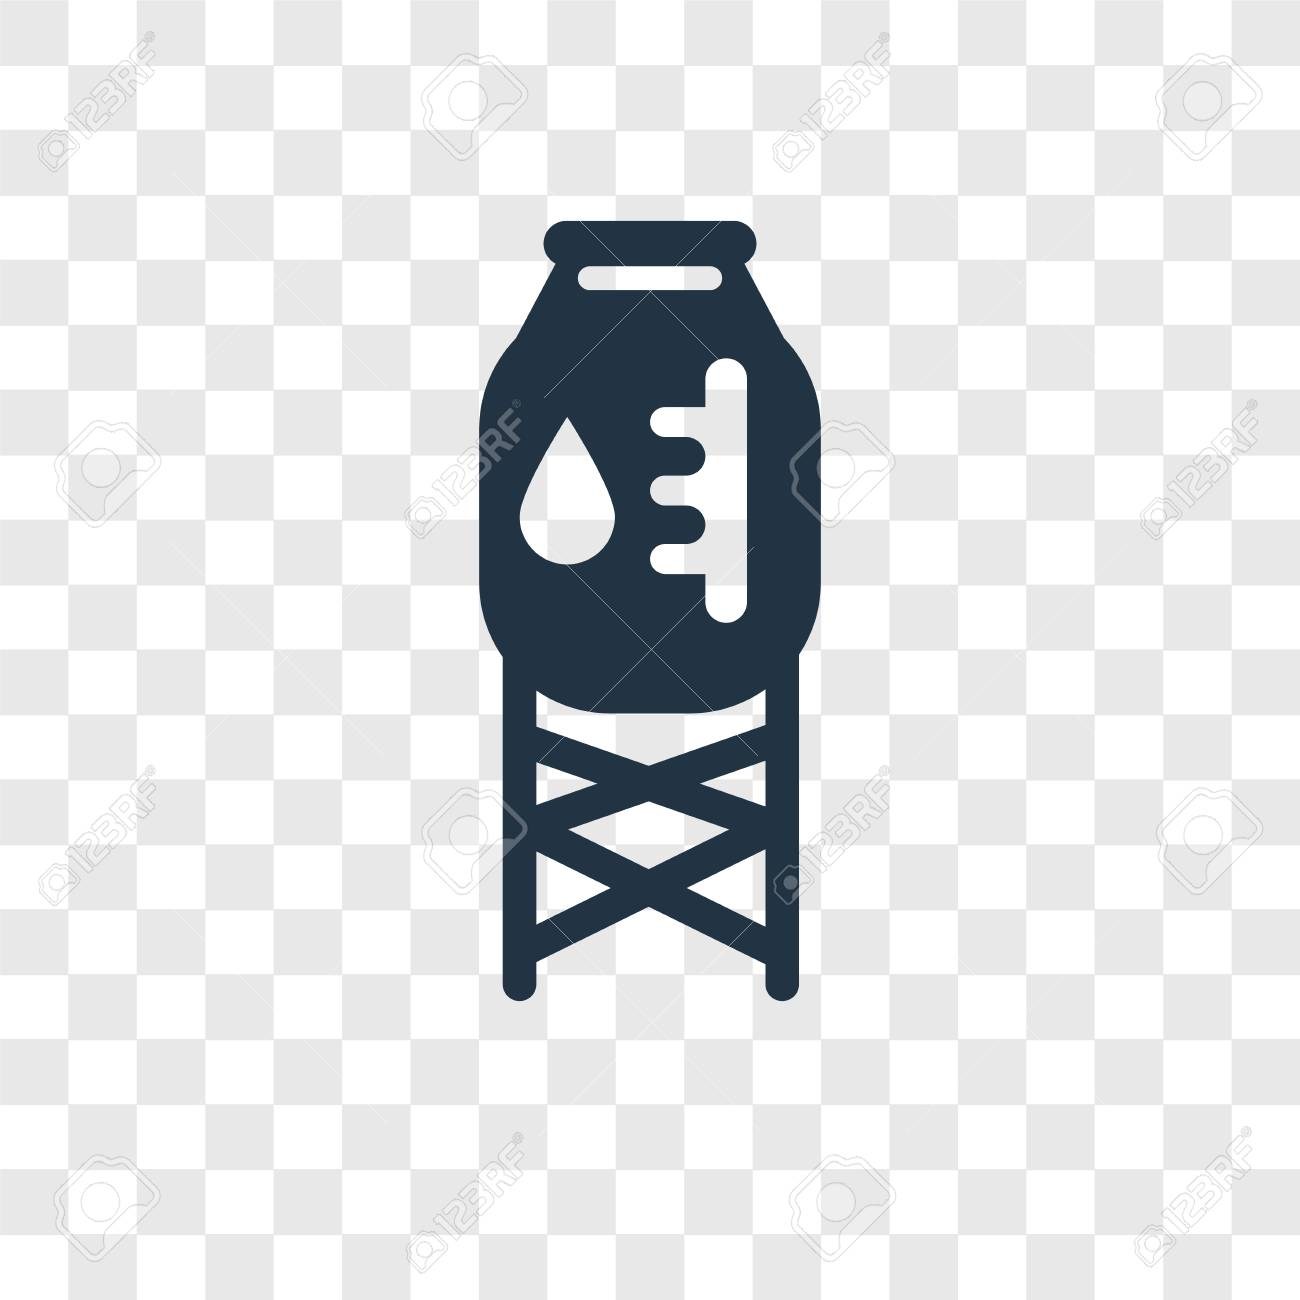 water tank vector icon isolated on transparent background water royalty free cliparts vectors and stock illustration image 112485666 water tank vector icon isolated on transparent background water